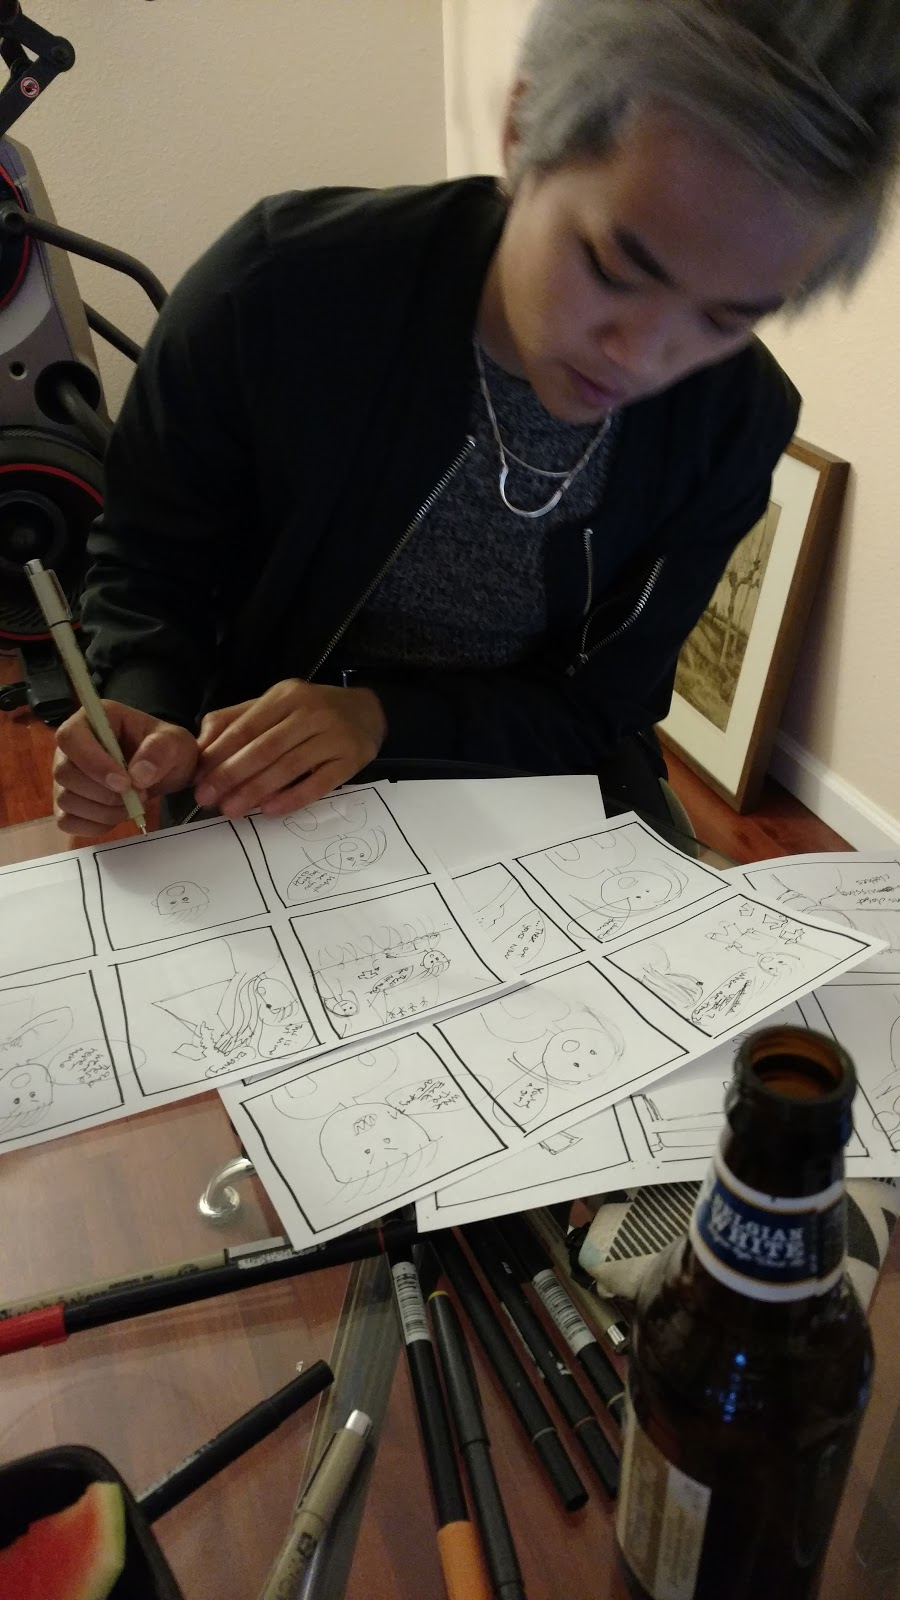 Director Sal Tran sketches images on stacks of storyboard grids. There are pens and markers across the table